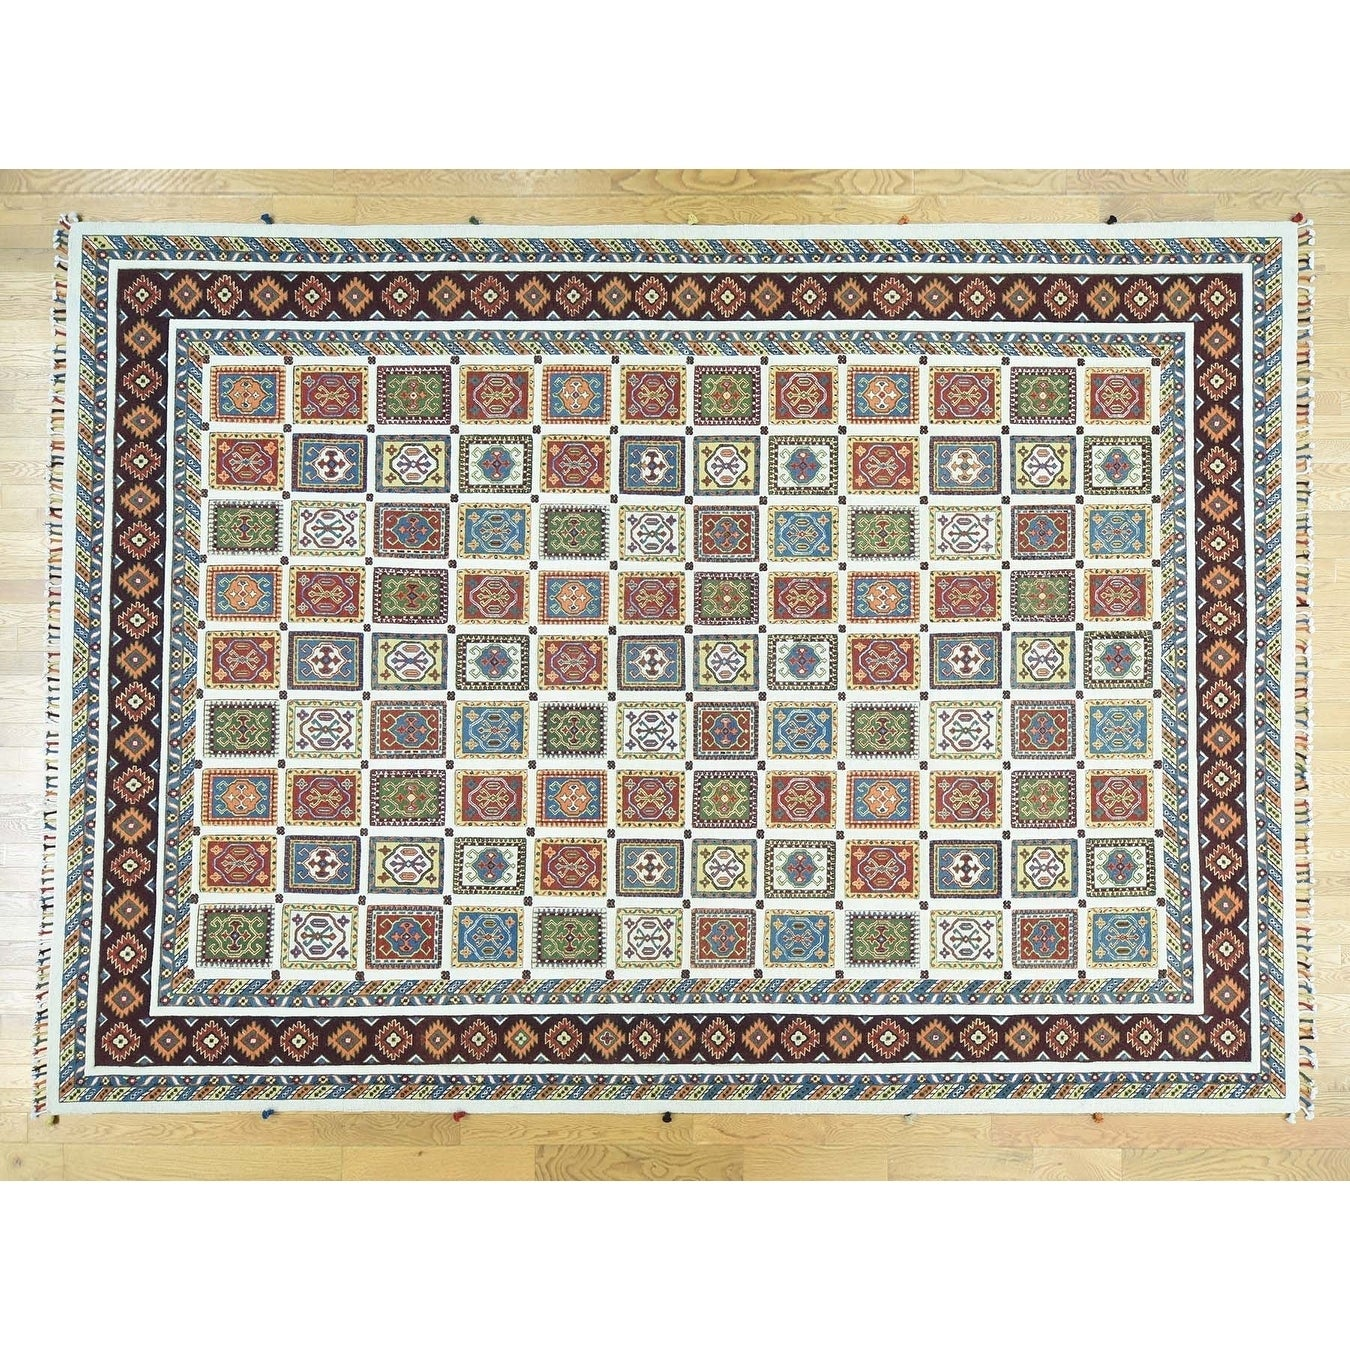 Hand Knotted Multicolored Tribal & Geometric with Wool Oriental Rug - 10 x 14